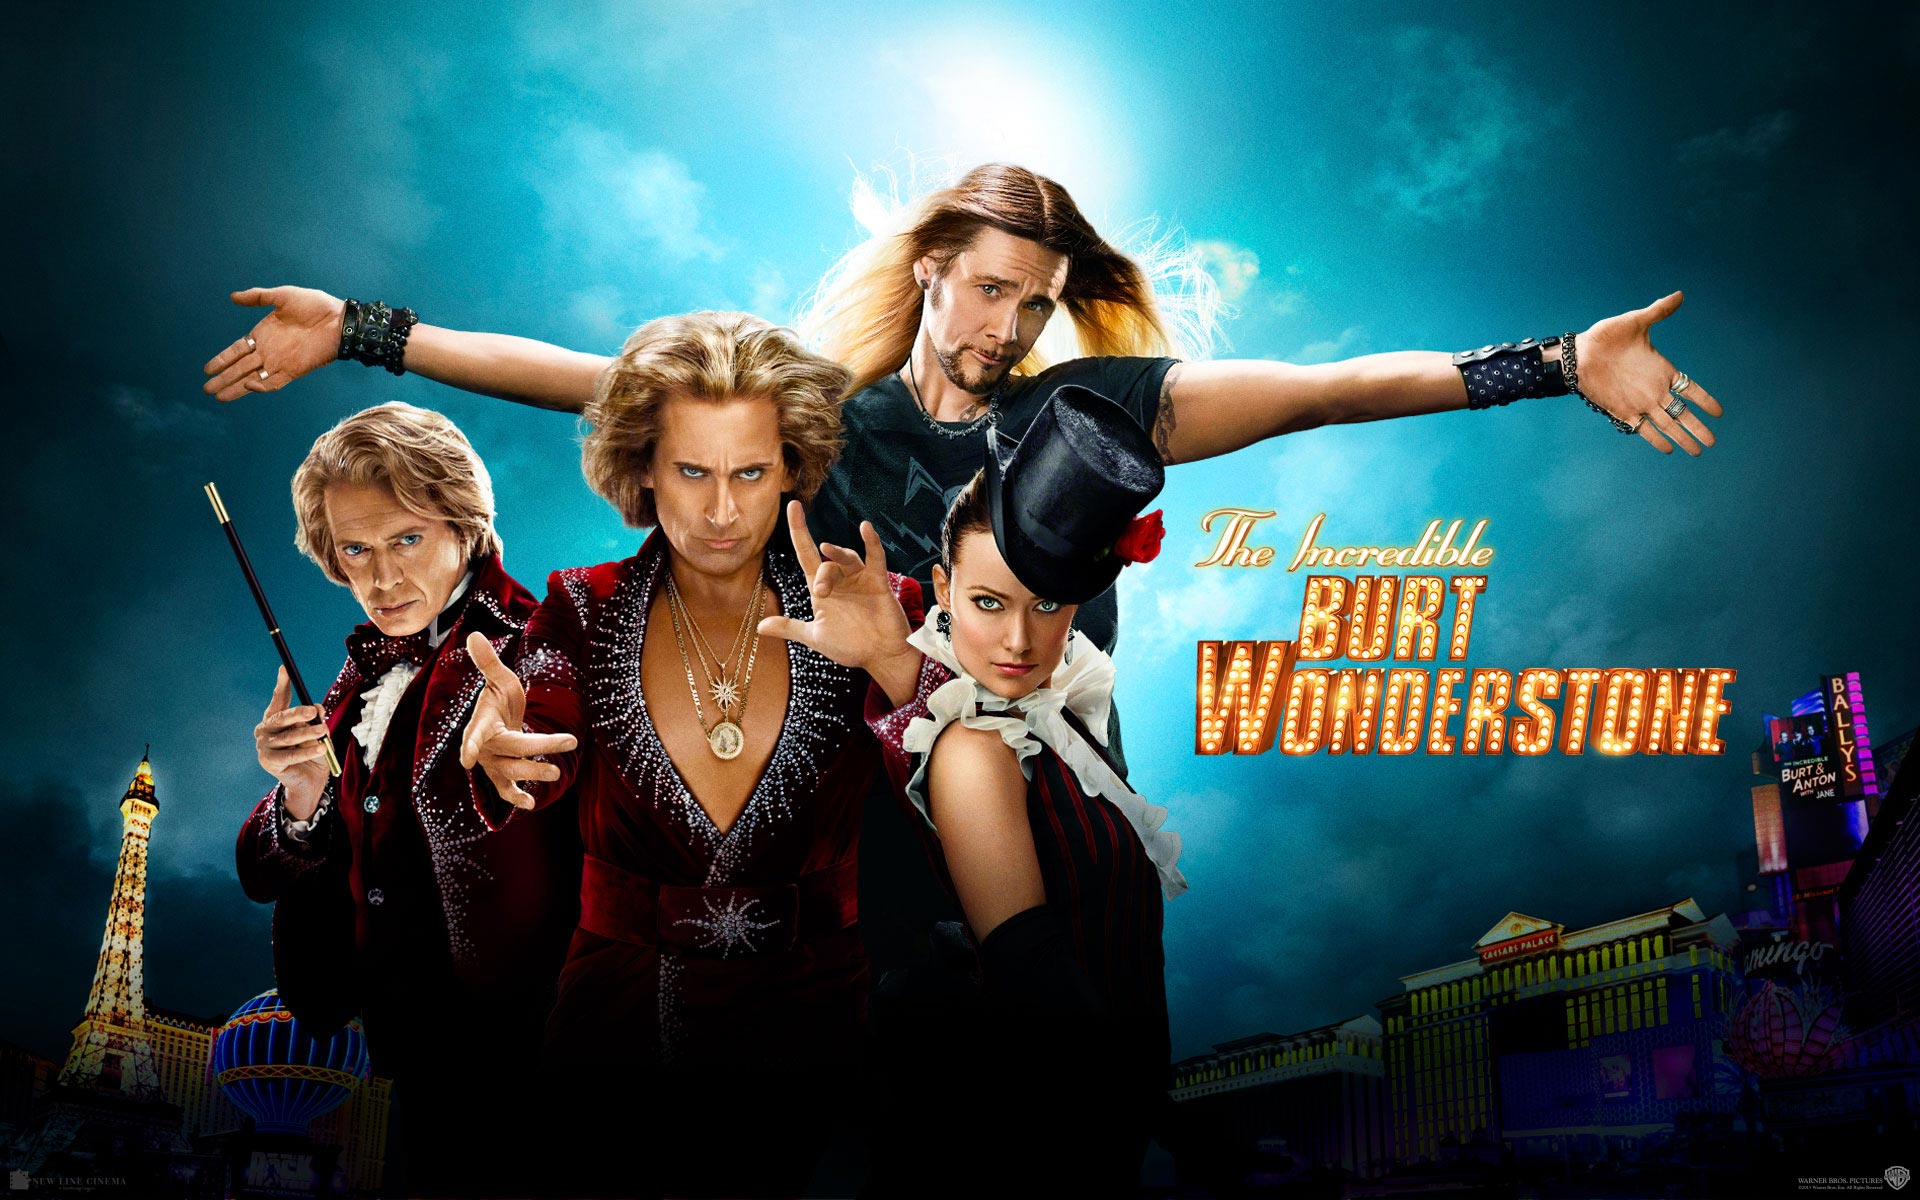 The-Incredible-Burt-Wonderstone_08.jpg